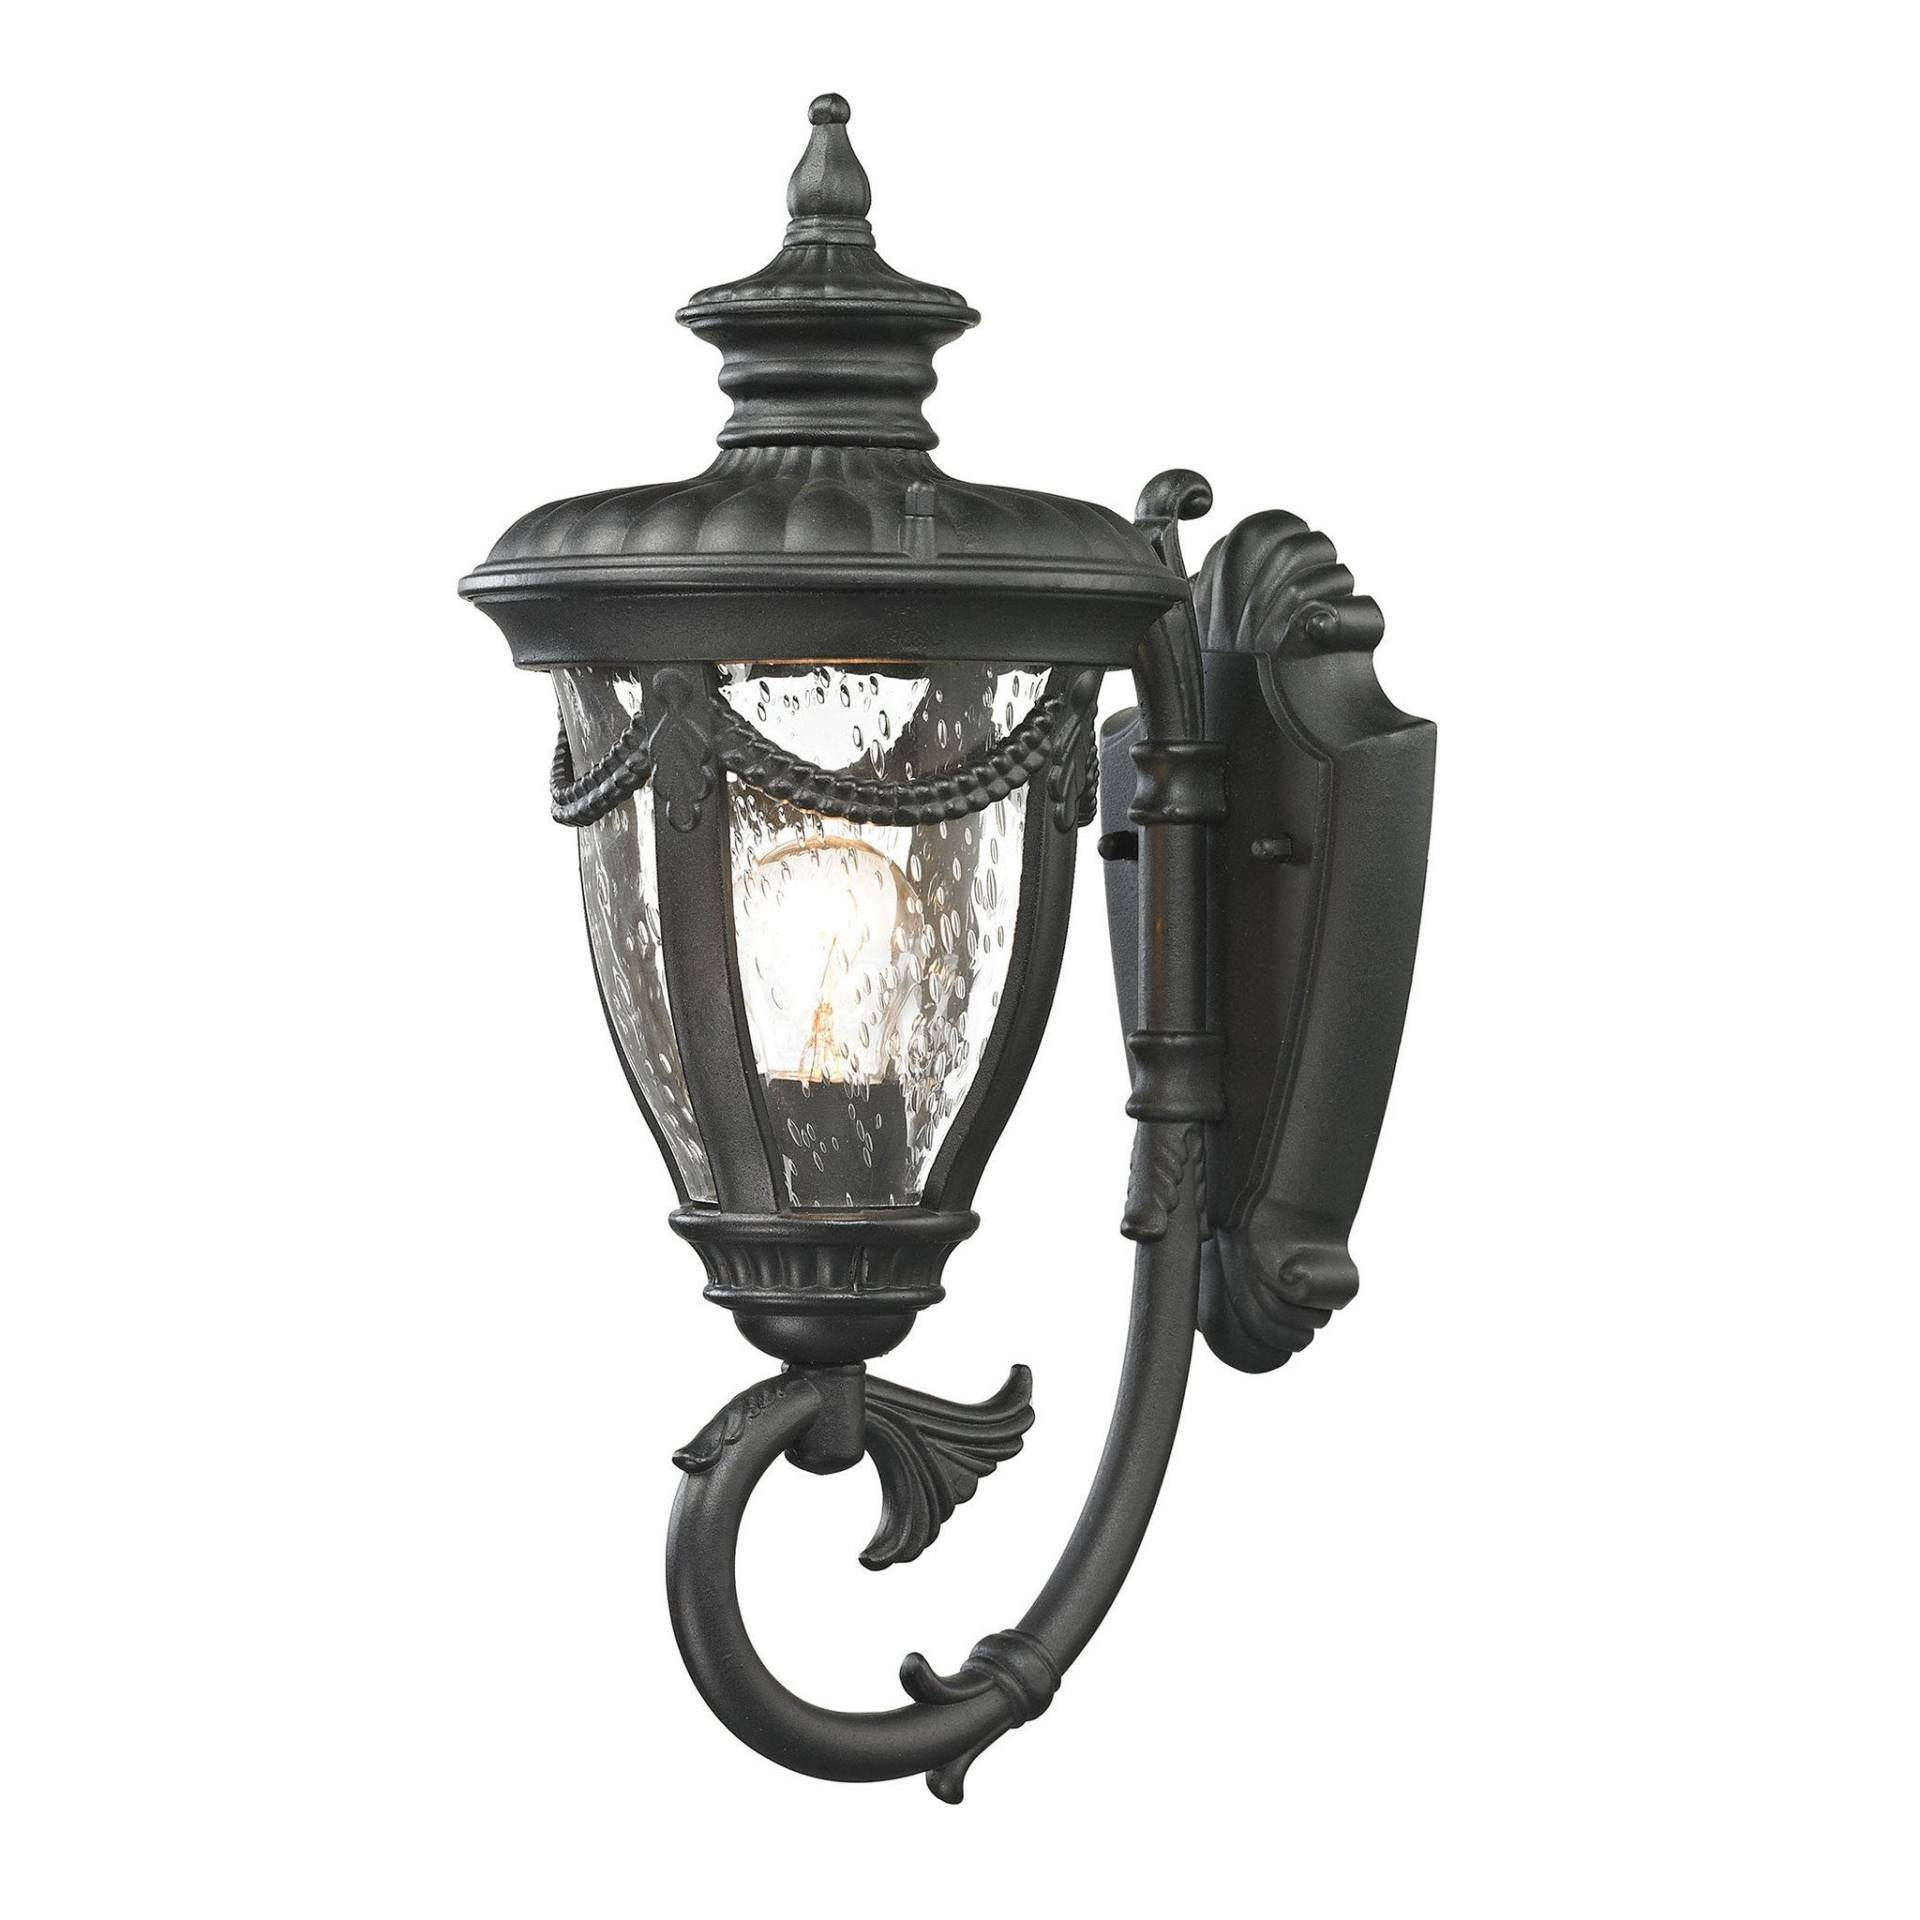 ELK Lighting 45075/1 Anise Collection Textured Matte Black Finish from ELK Lighting